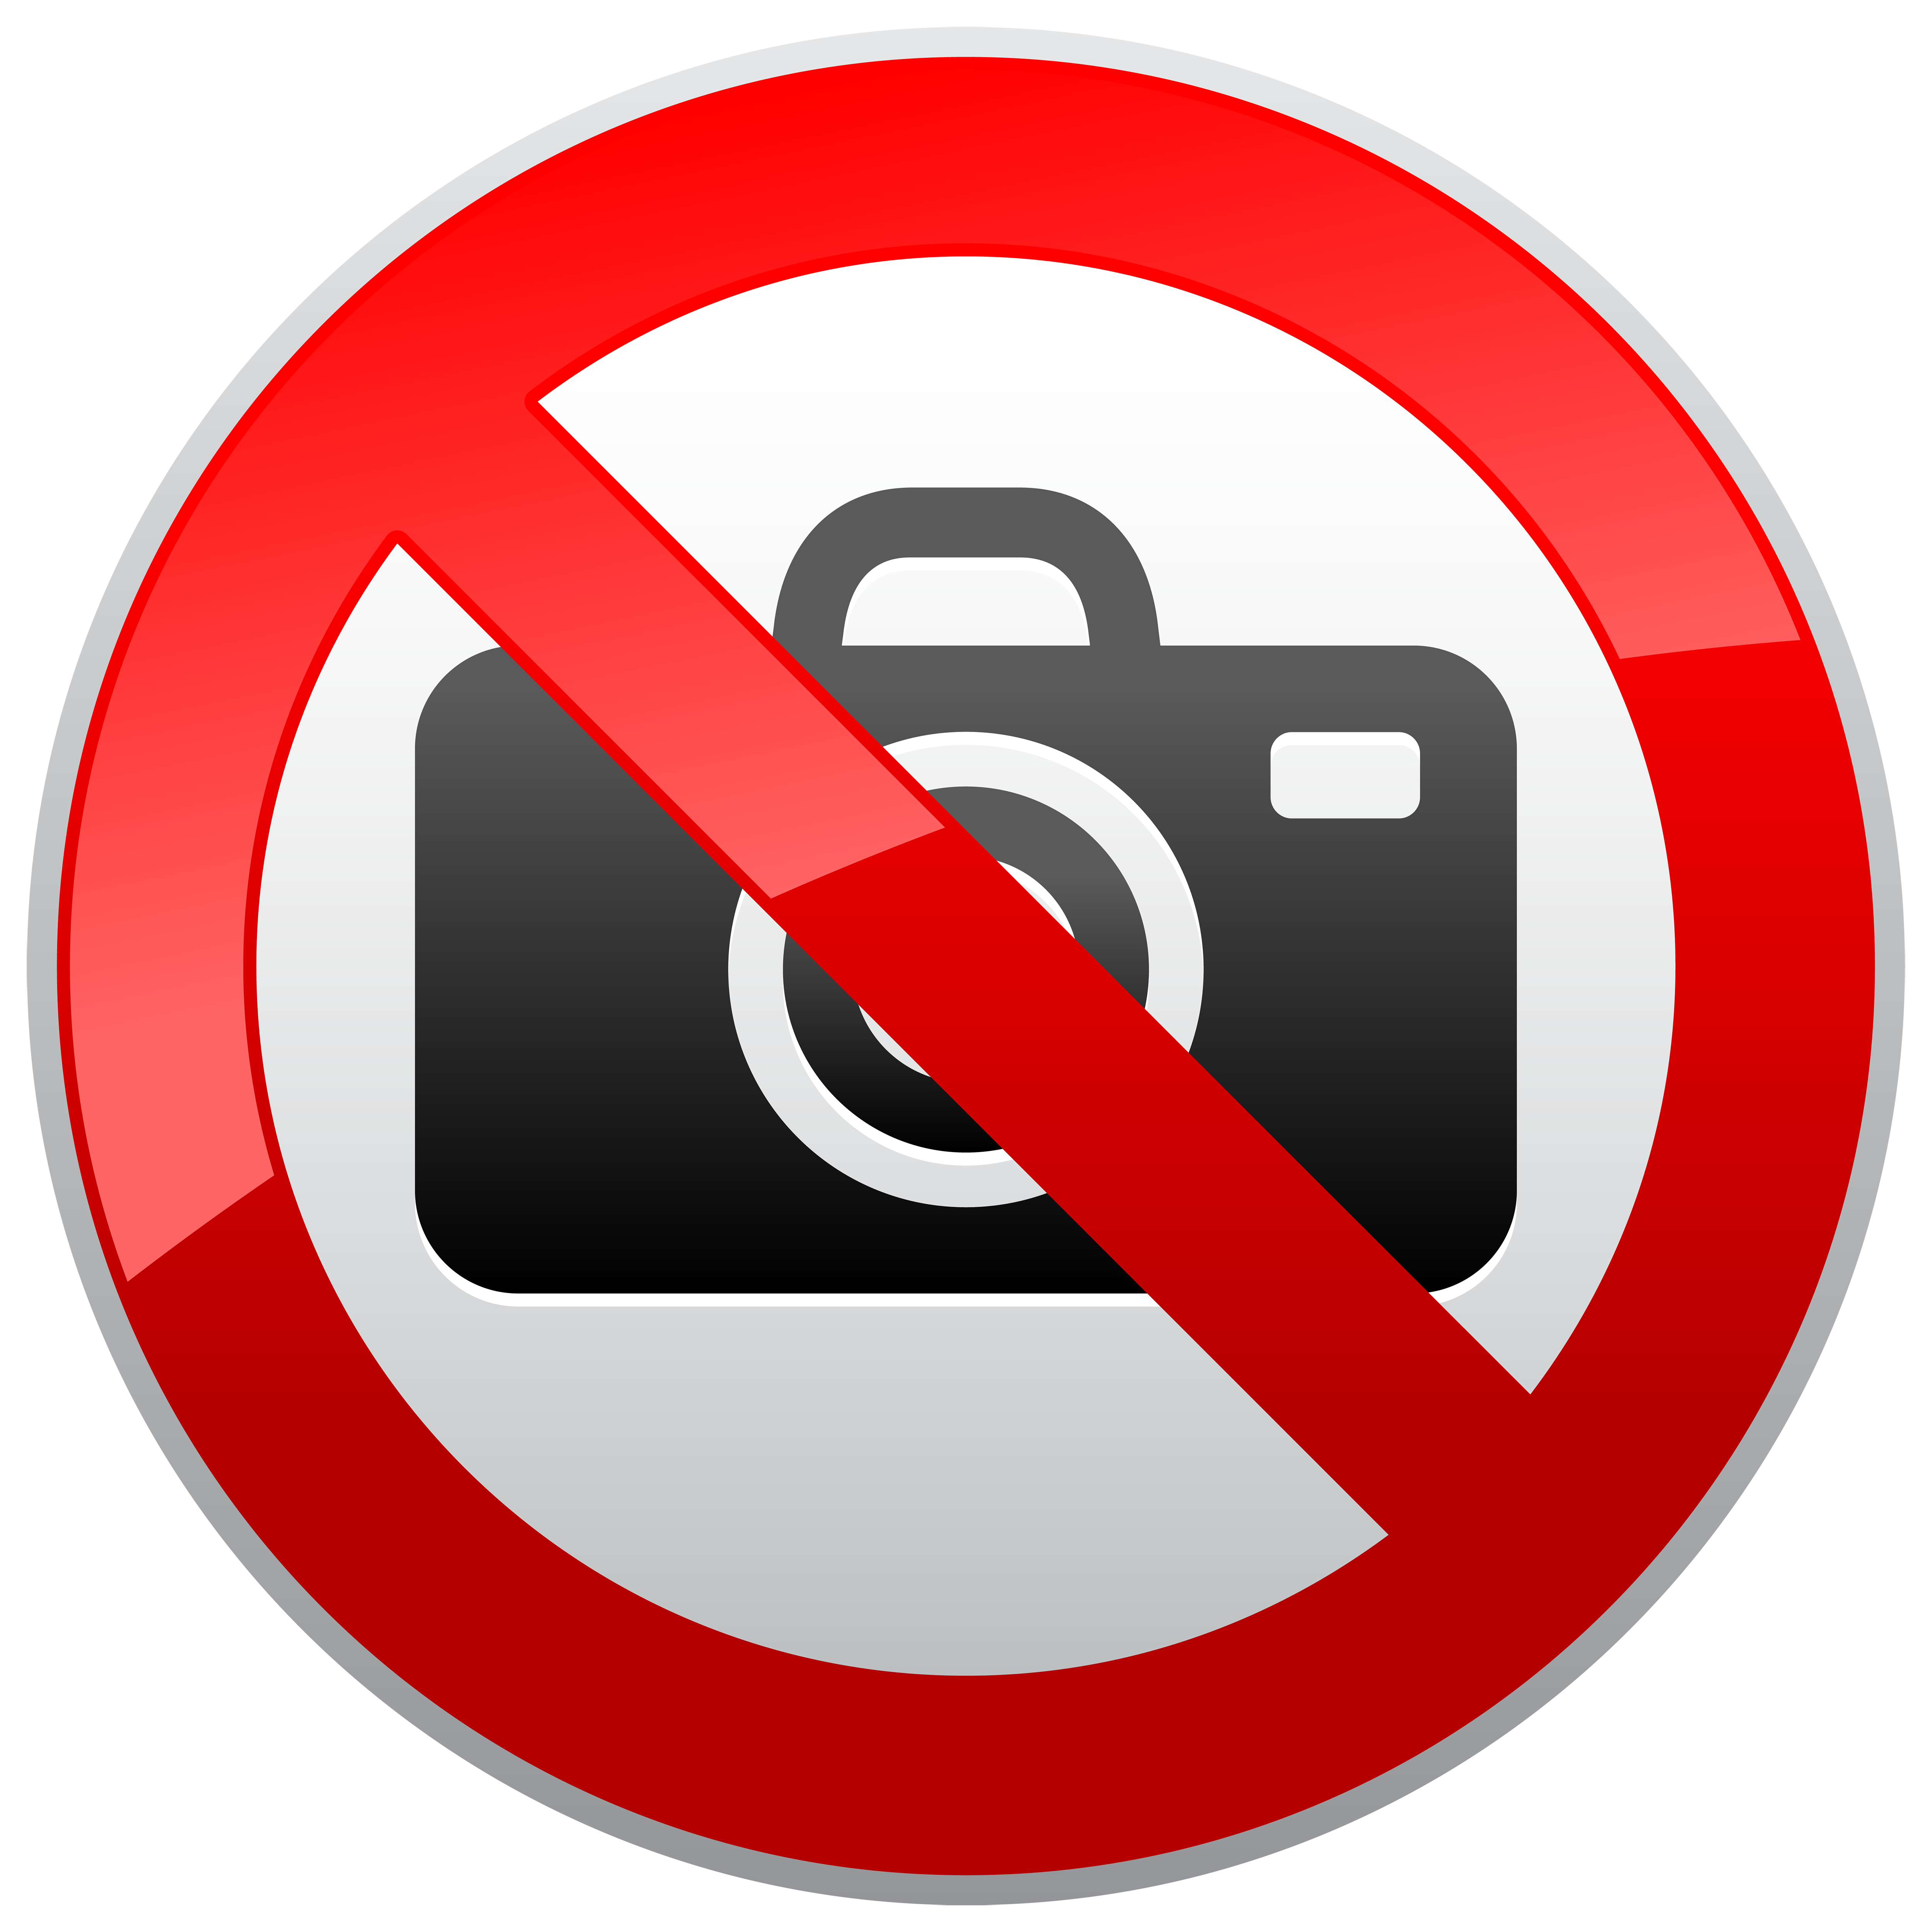 Photography clip art png. No prohibition sign clipart